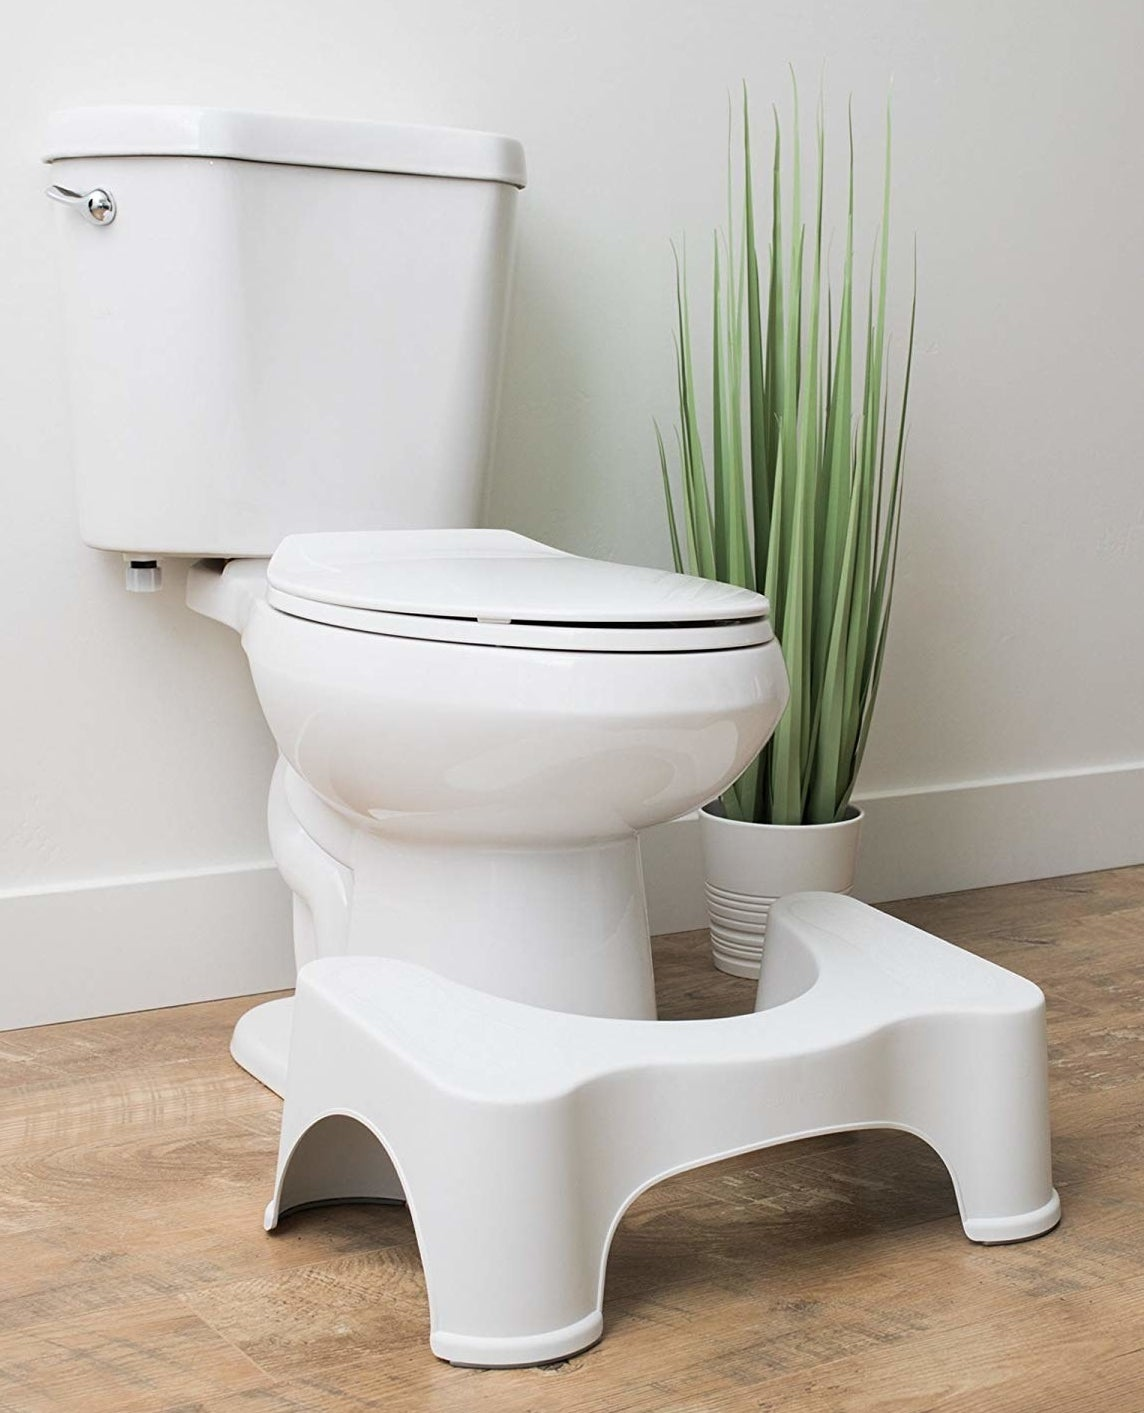 The squatty potty in front of a toilet